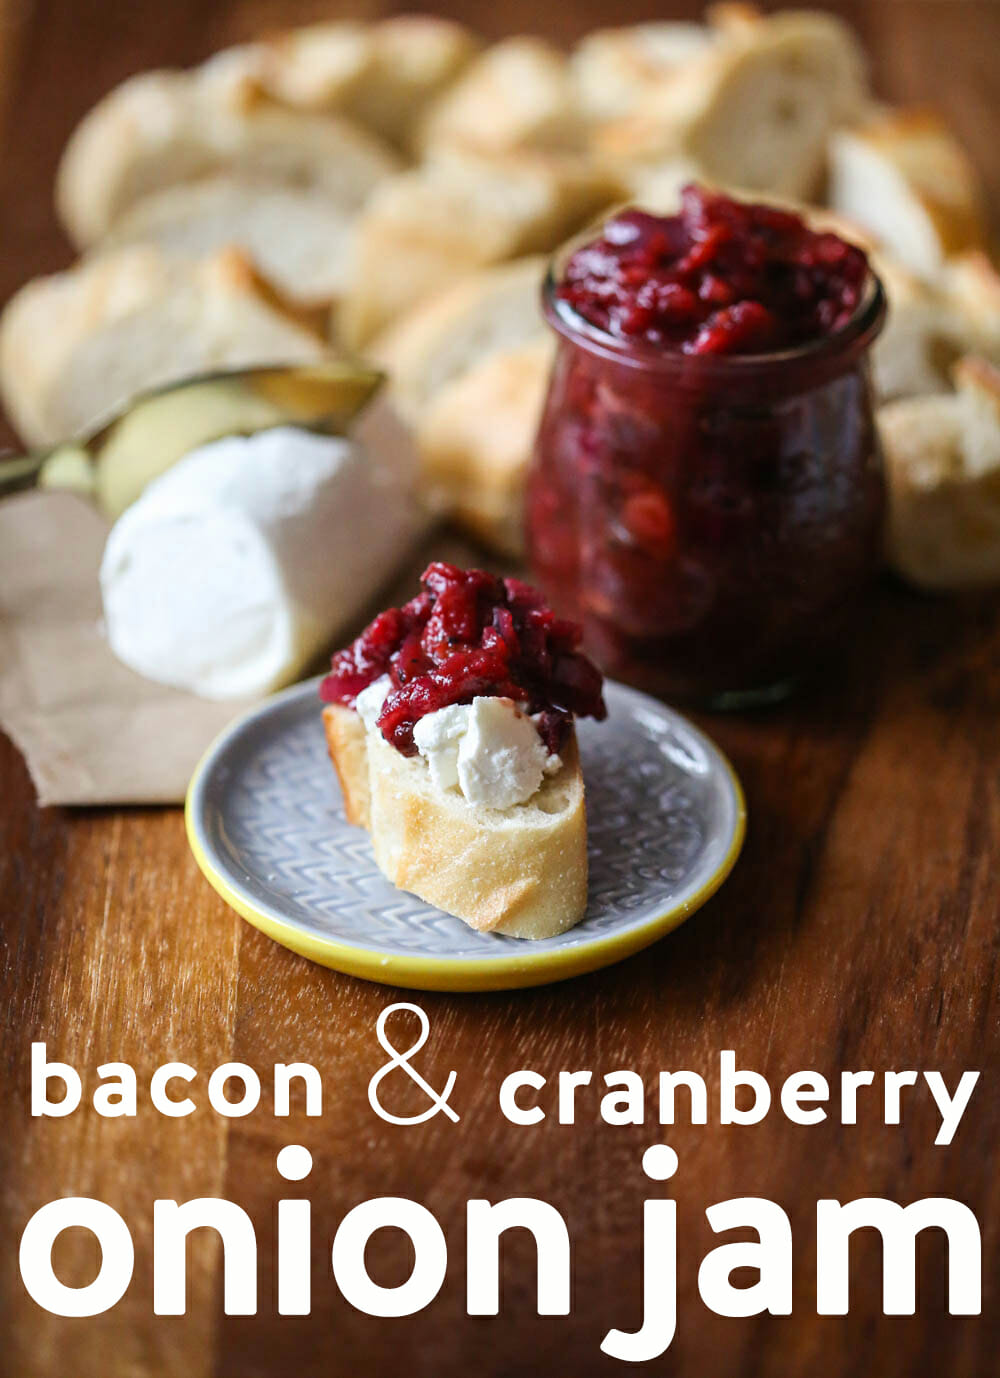 Bacon and Cranberry Onion Jam from Our Best Bites